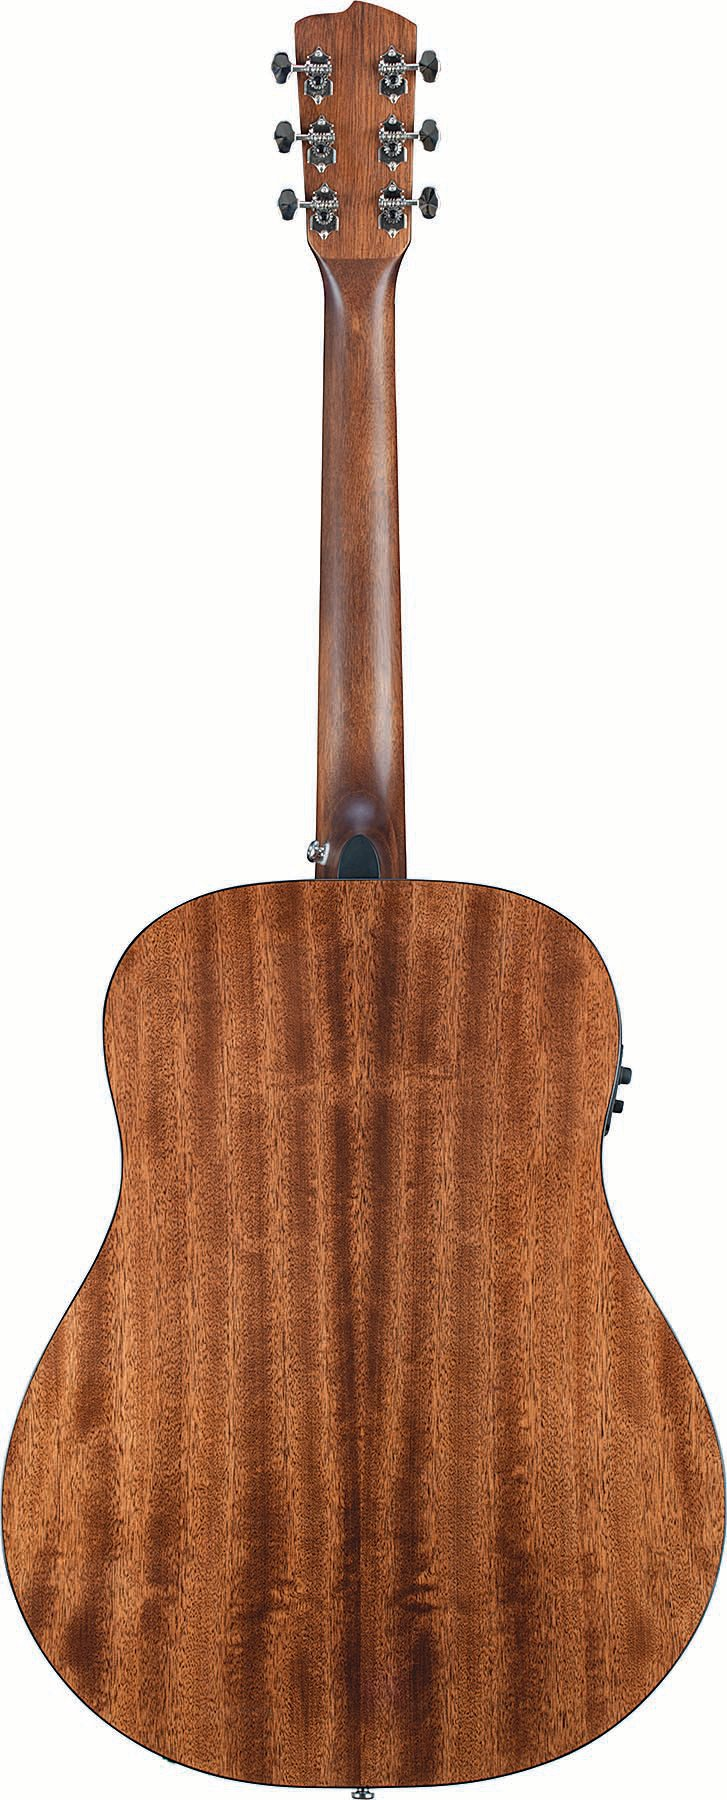 Breedlove Pursuit Dreadnought Acoustic Guitar with Mahogany Back and Sides PURSUIT-DREAD-M